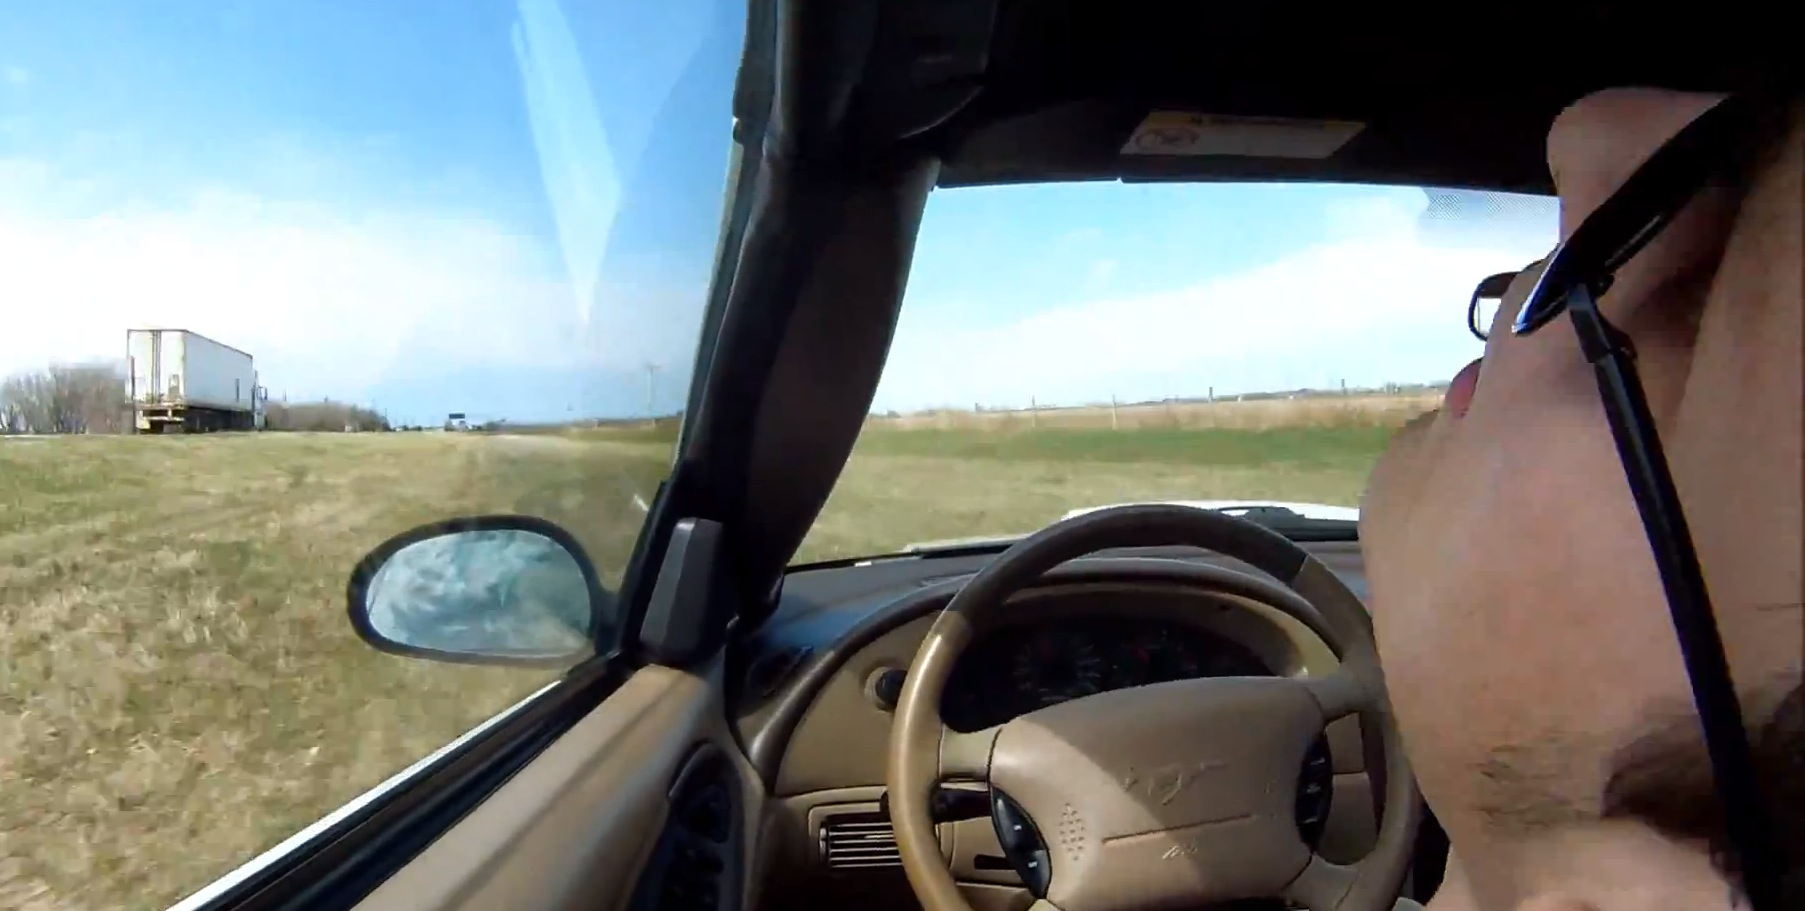 mustang-driver-passes-out-car-barely-avoids-massive-crash-and-drifts-on-its-own-staged-video-95262_1